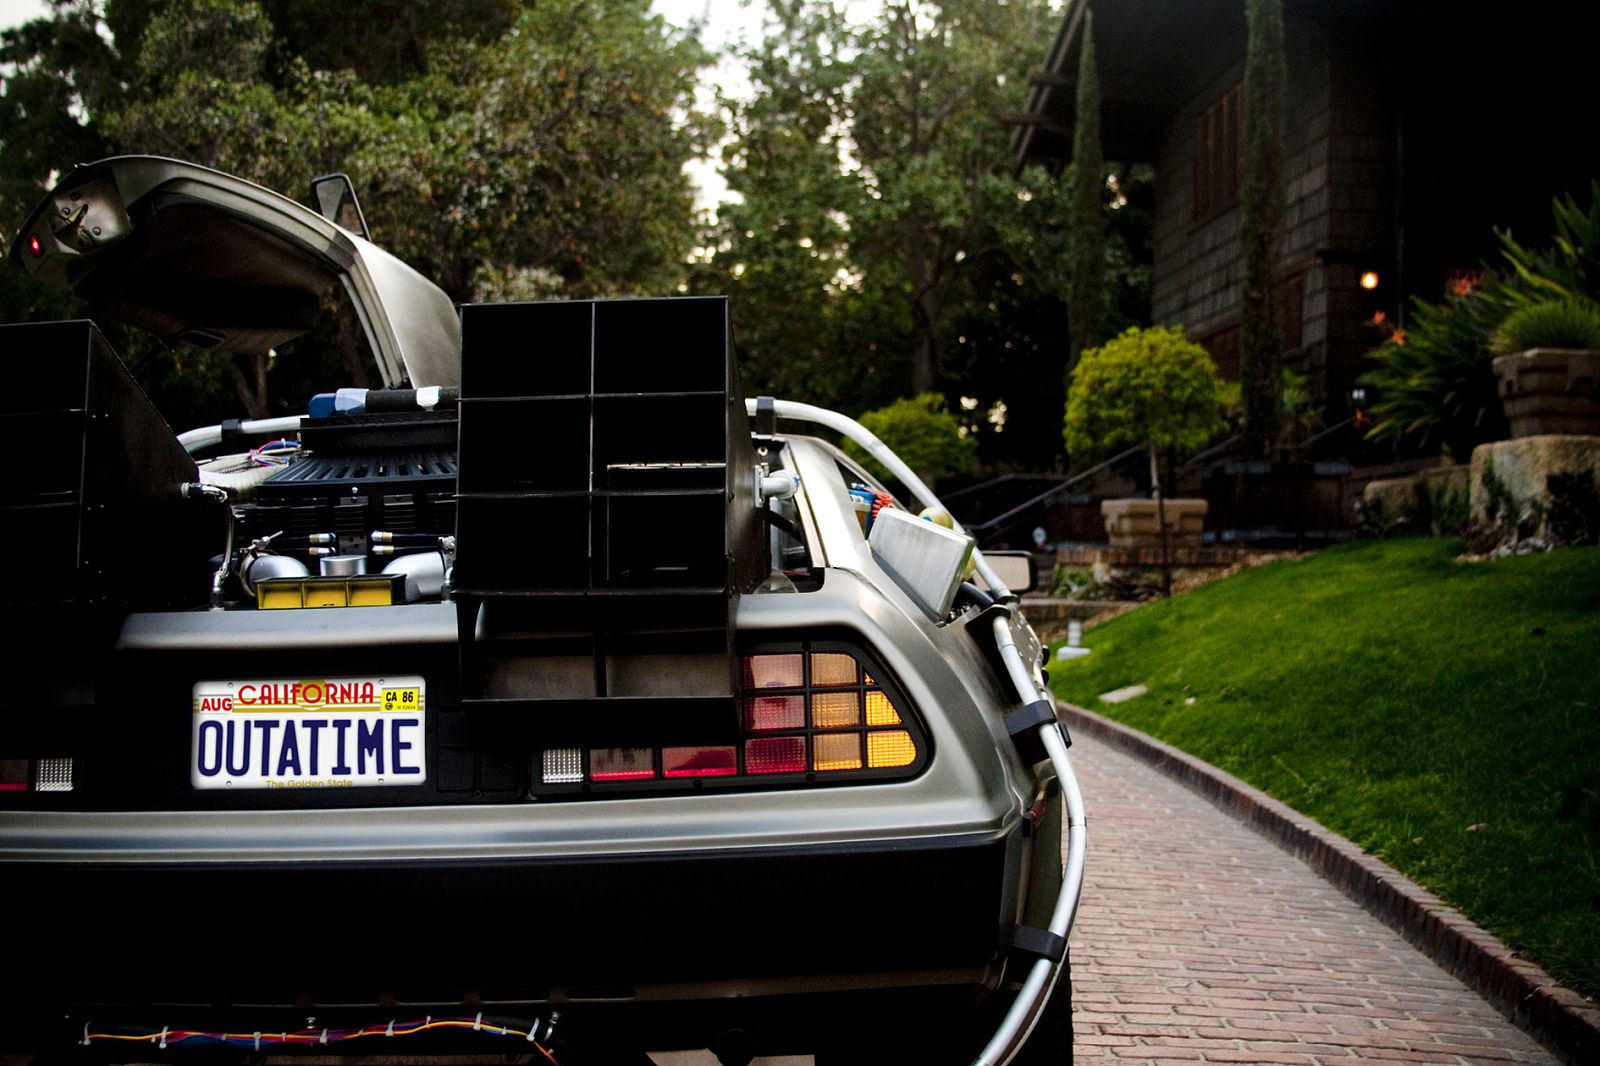 Movie Back To The Future Wallpaper 1600x1066 Movie Back To The Future 1600x1066